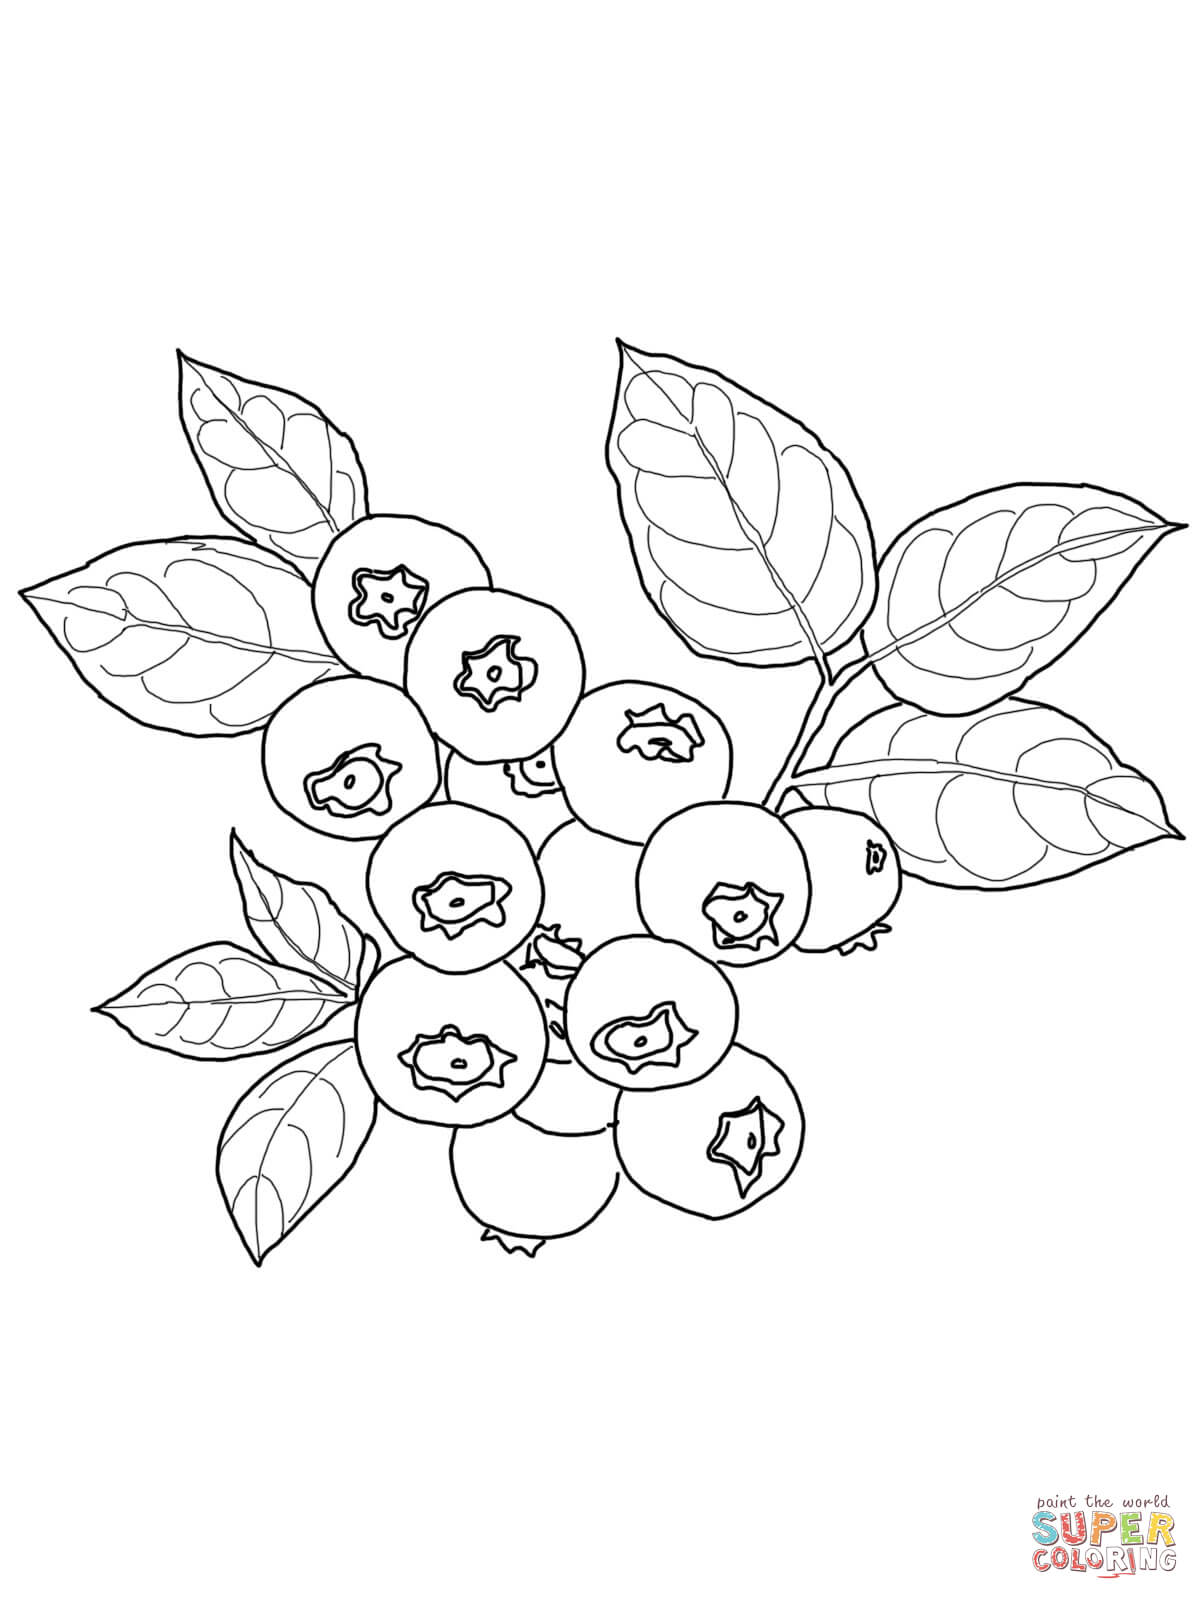 Blueberry coloring pages free. Blueberries clipart color